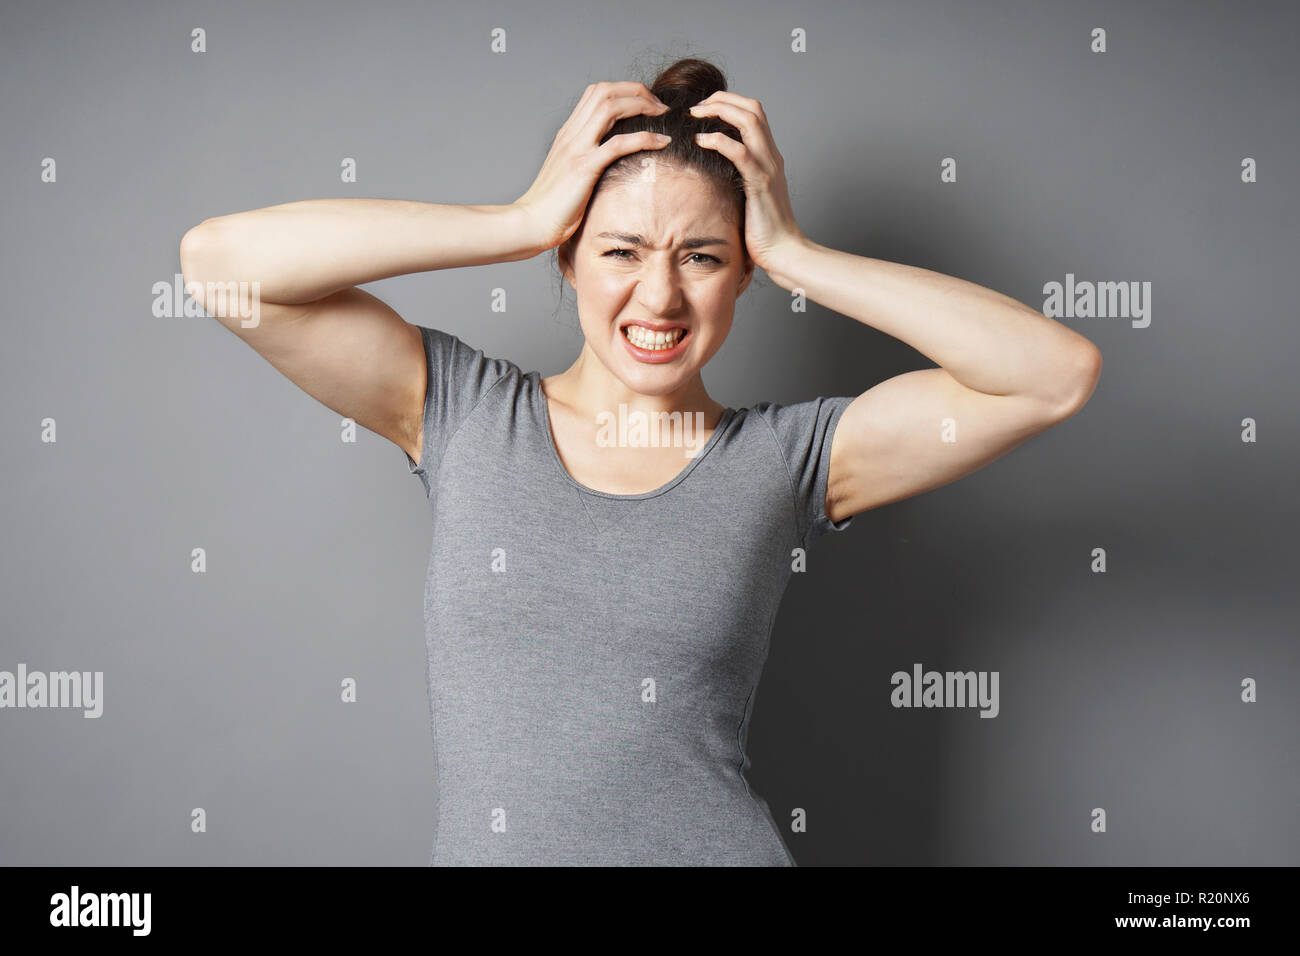 stressed young woman in despair or pain with hands holding head - gray background with copy space - Stock Image